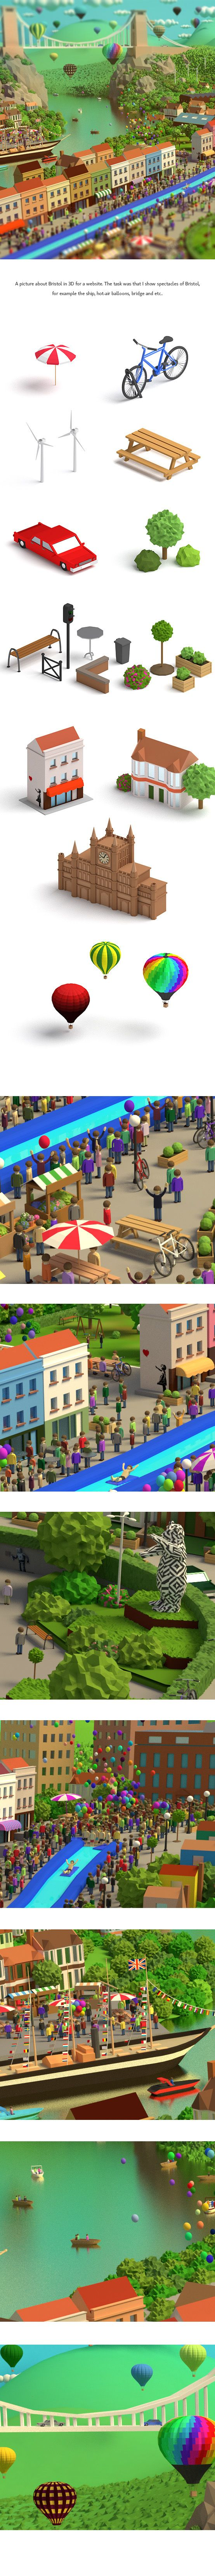 Bristol in low-poly on Behance